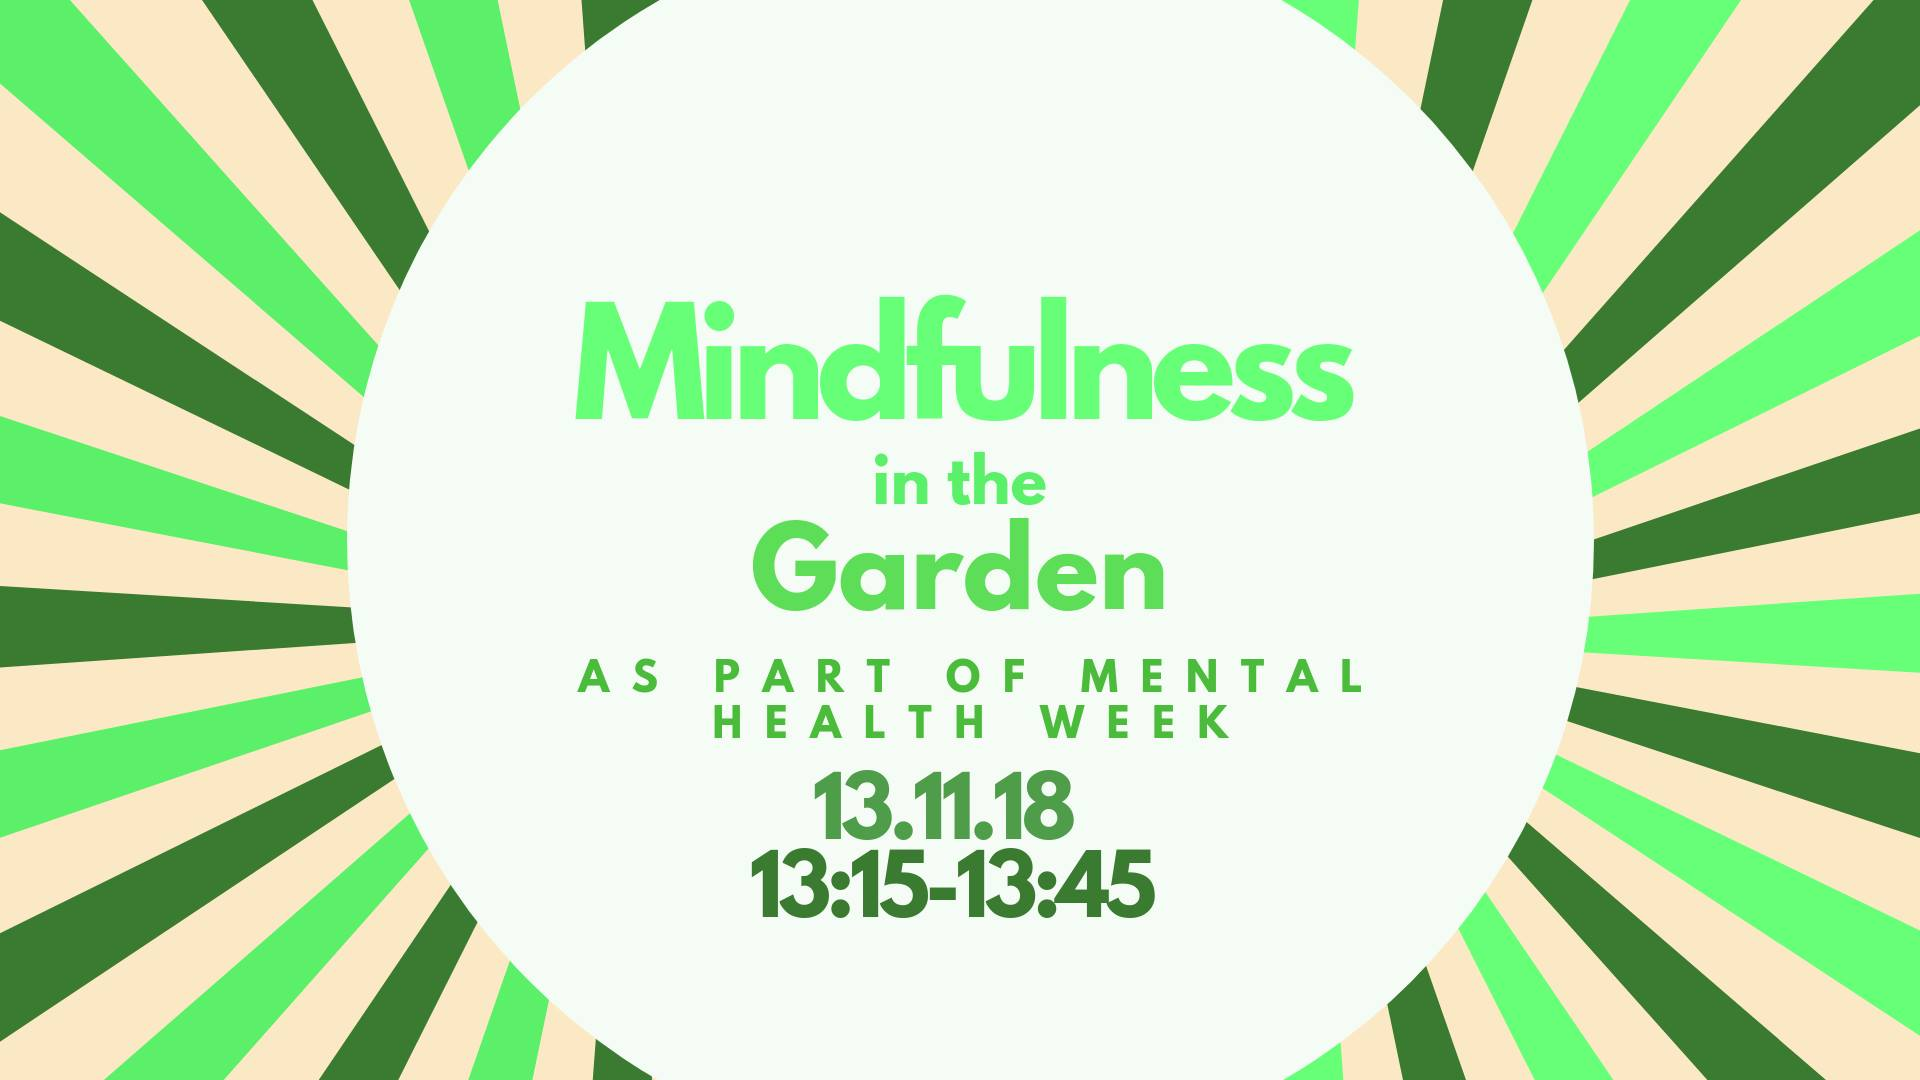 Mindfulness in the Garden, 13th November